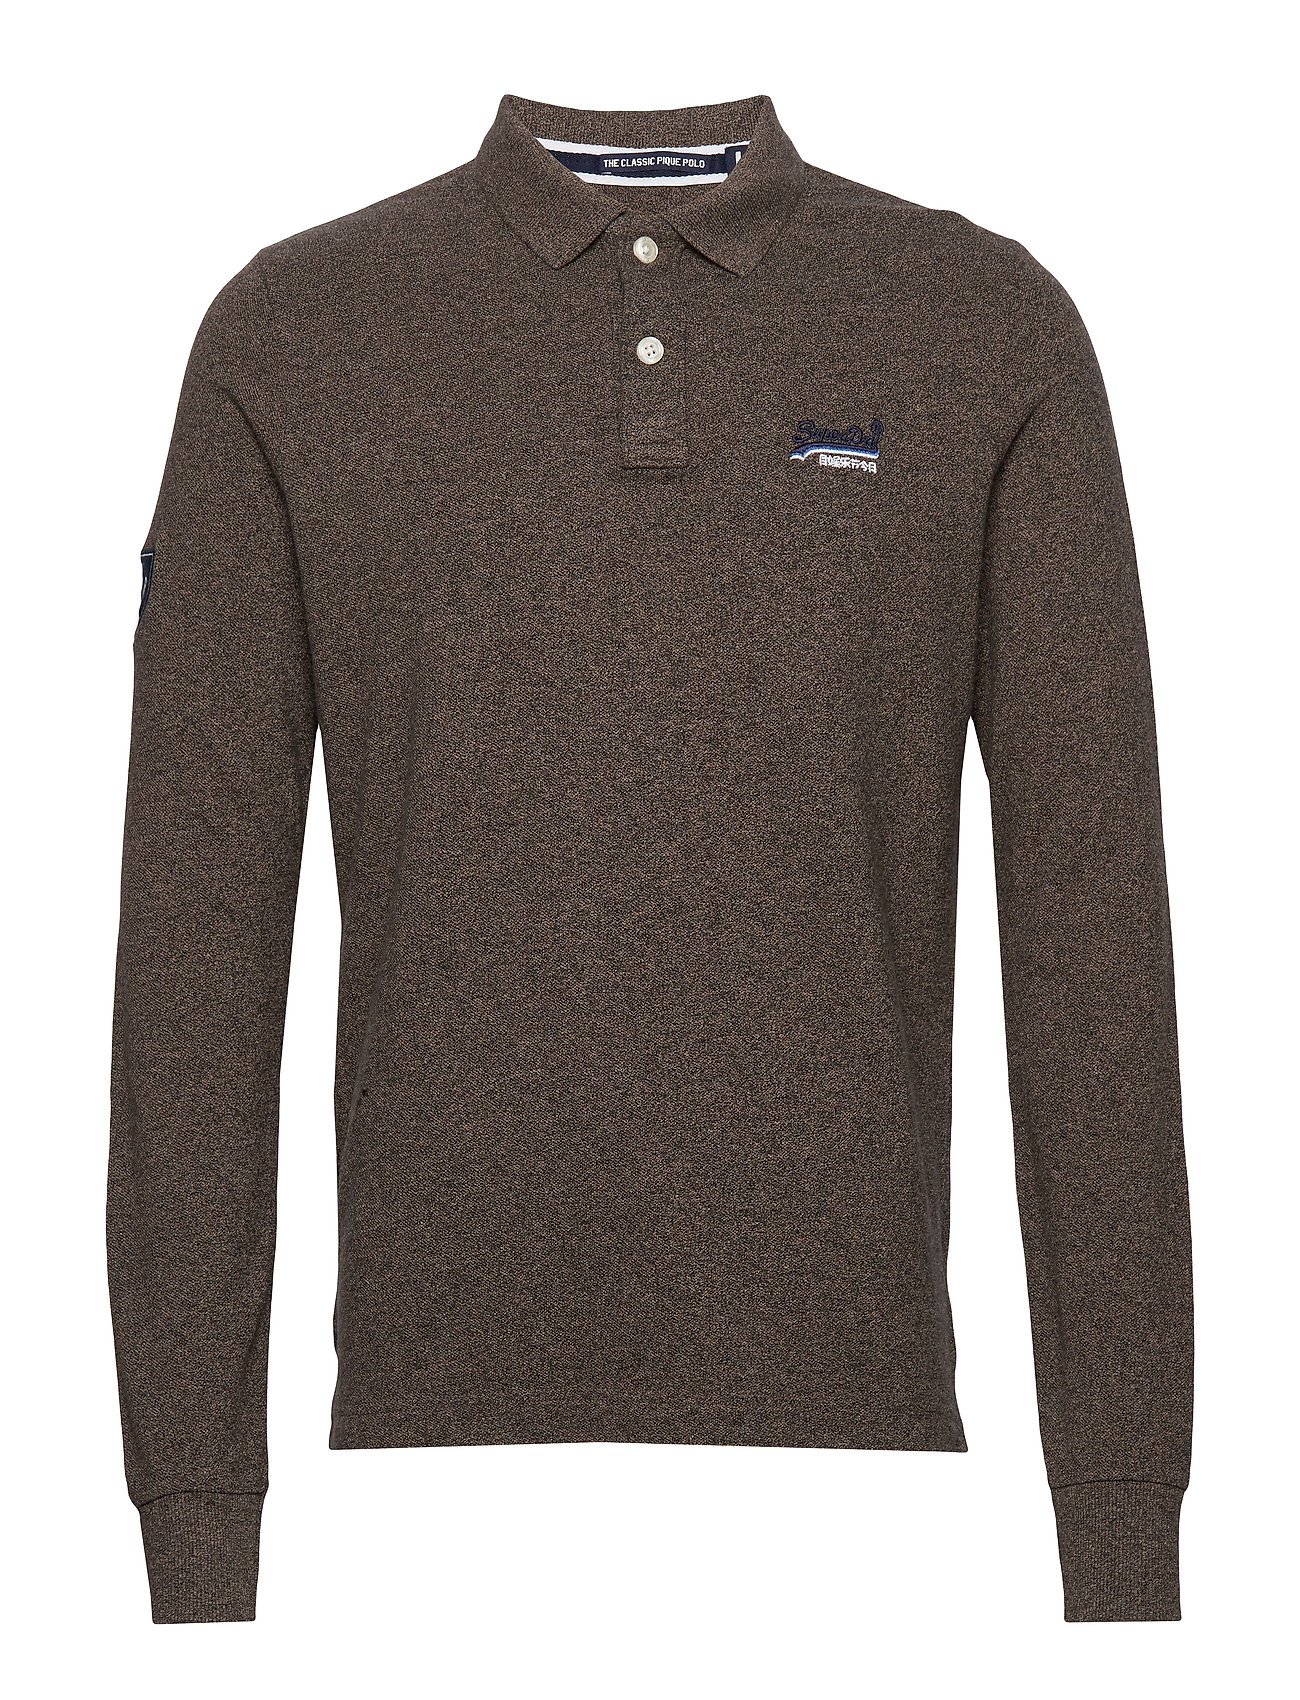 Superdry CLASSIC L/S PIQUE POLO - PEBBLE EARTH GRIT